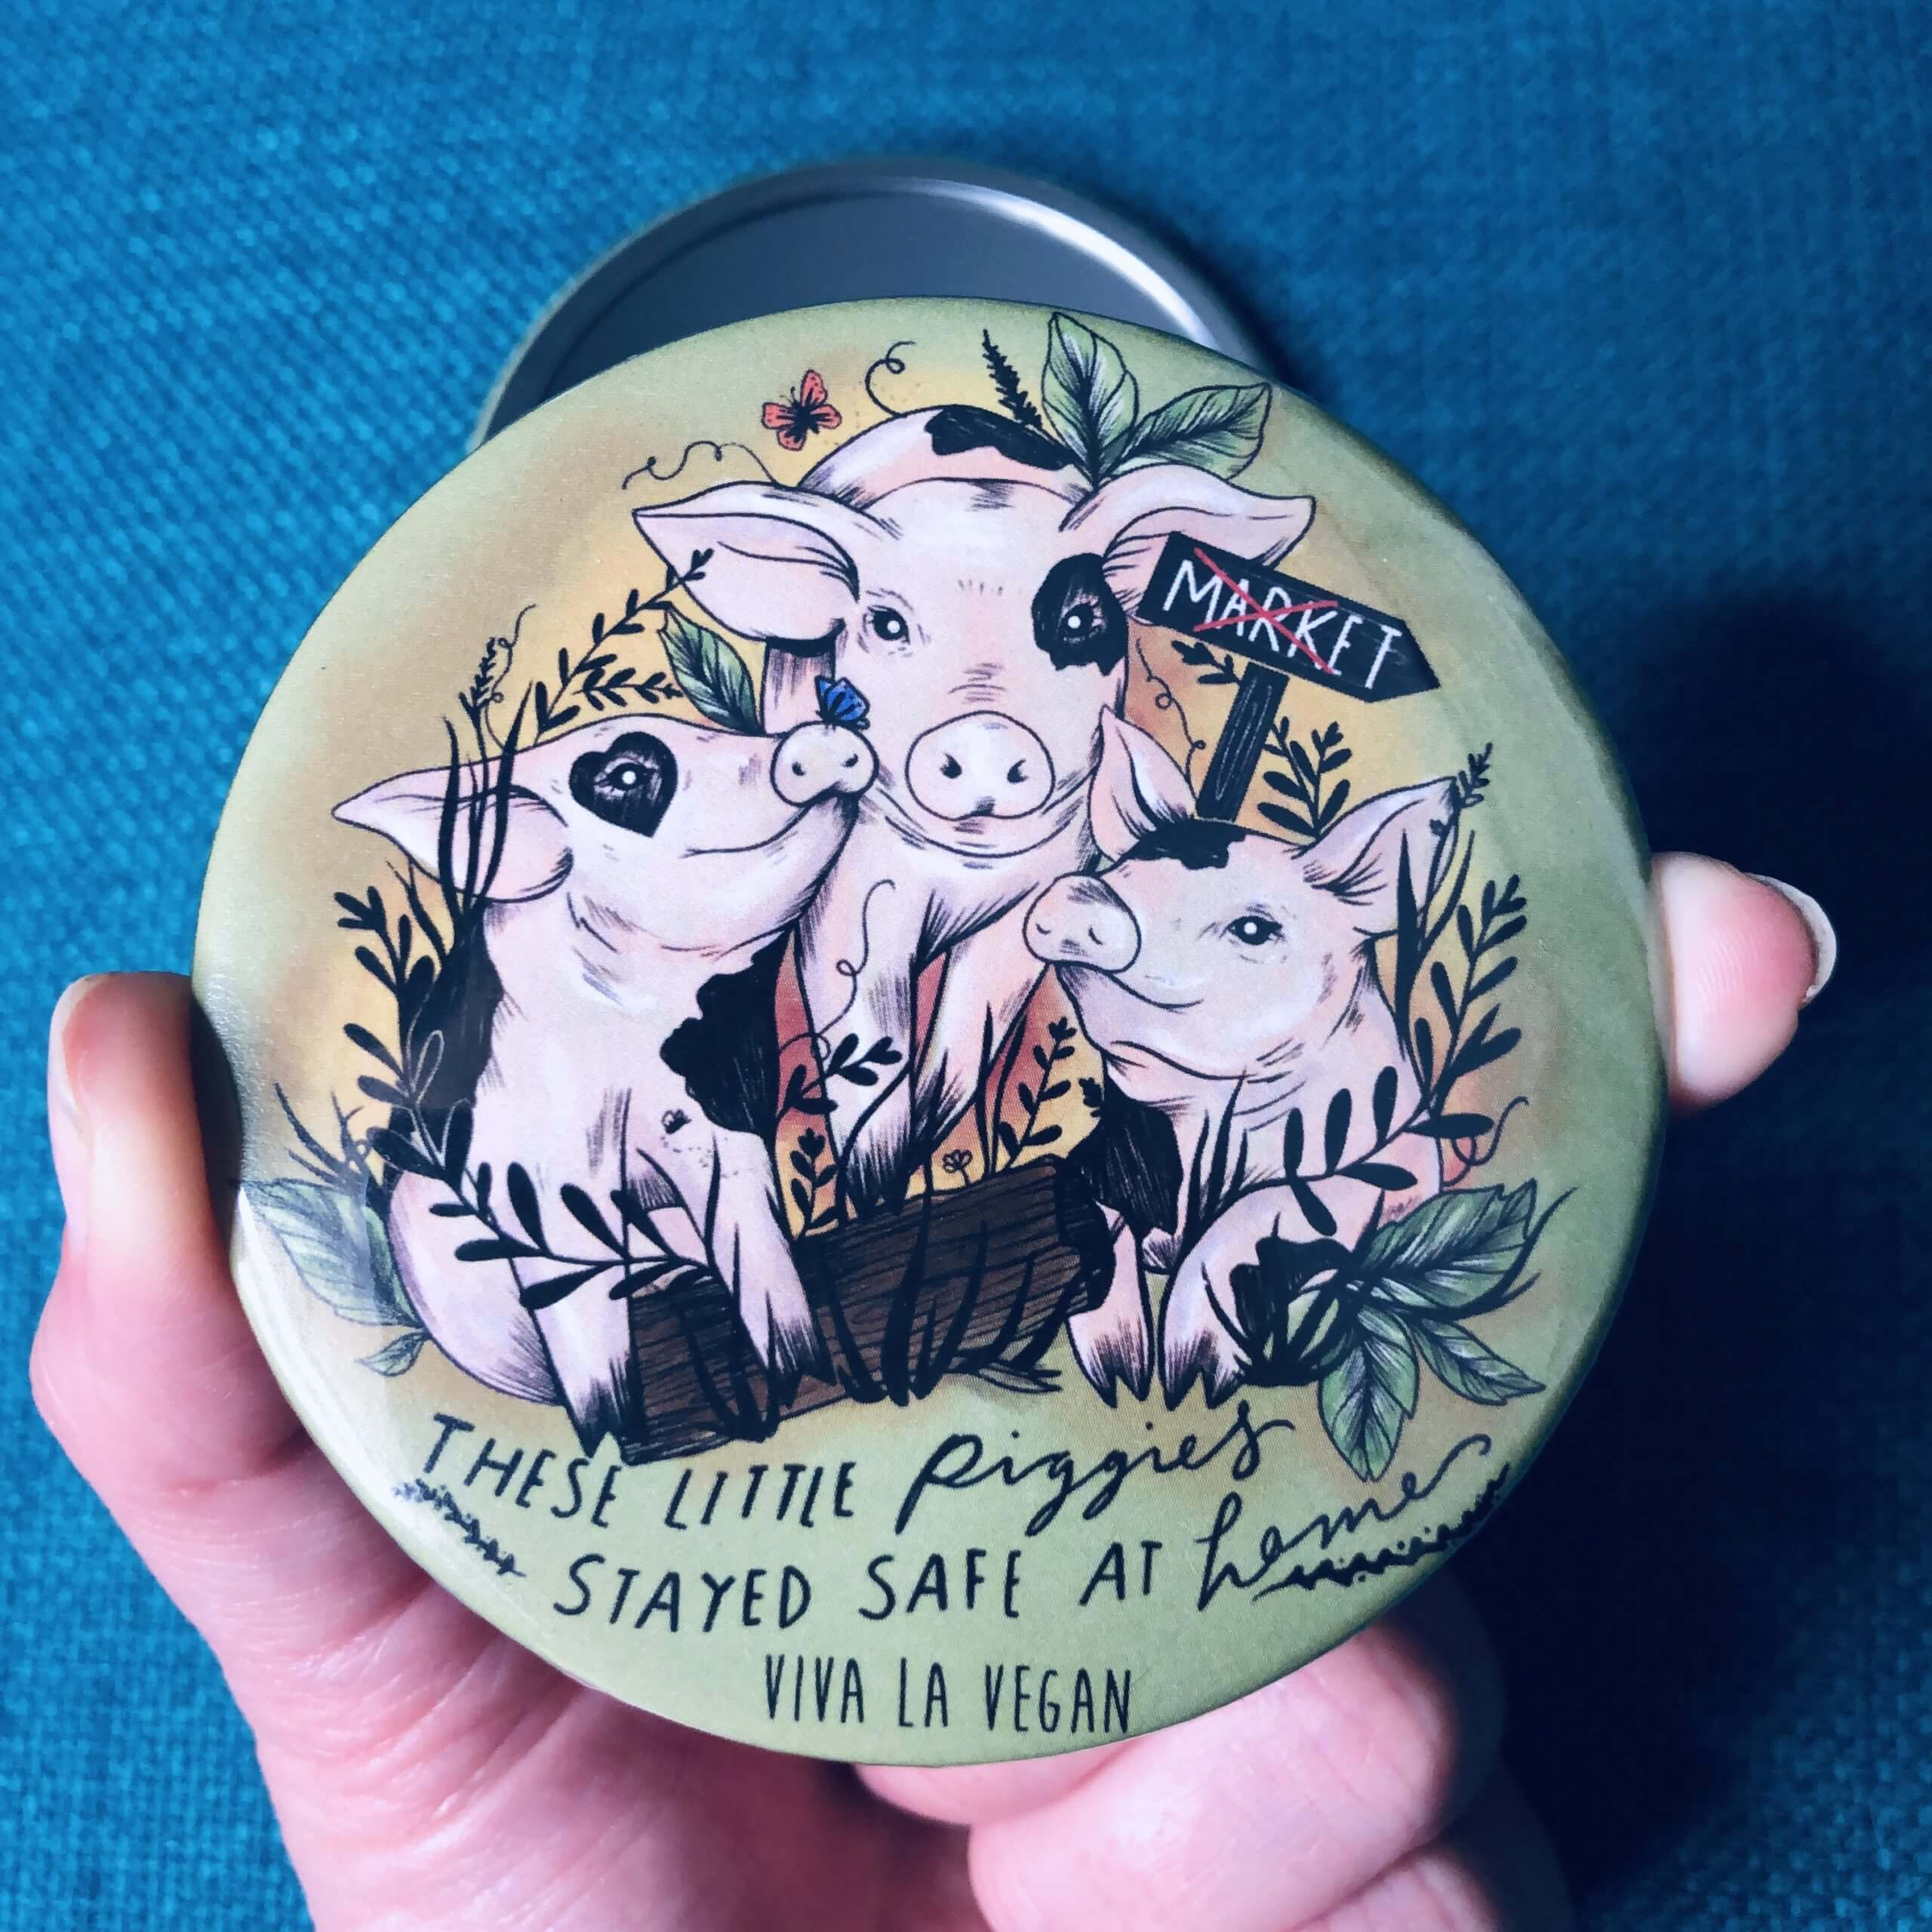 Pocket Mirror : These Little Piggies Stayed Safe At Home